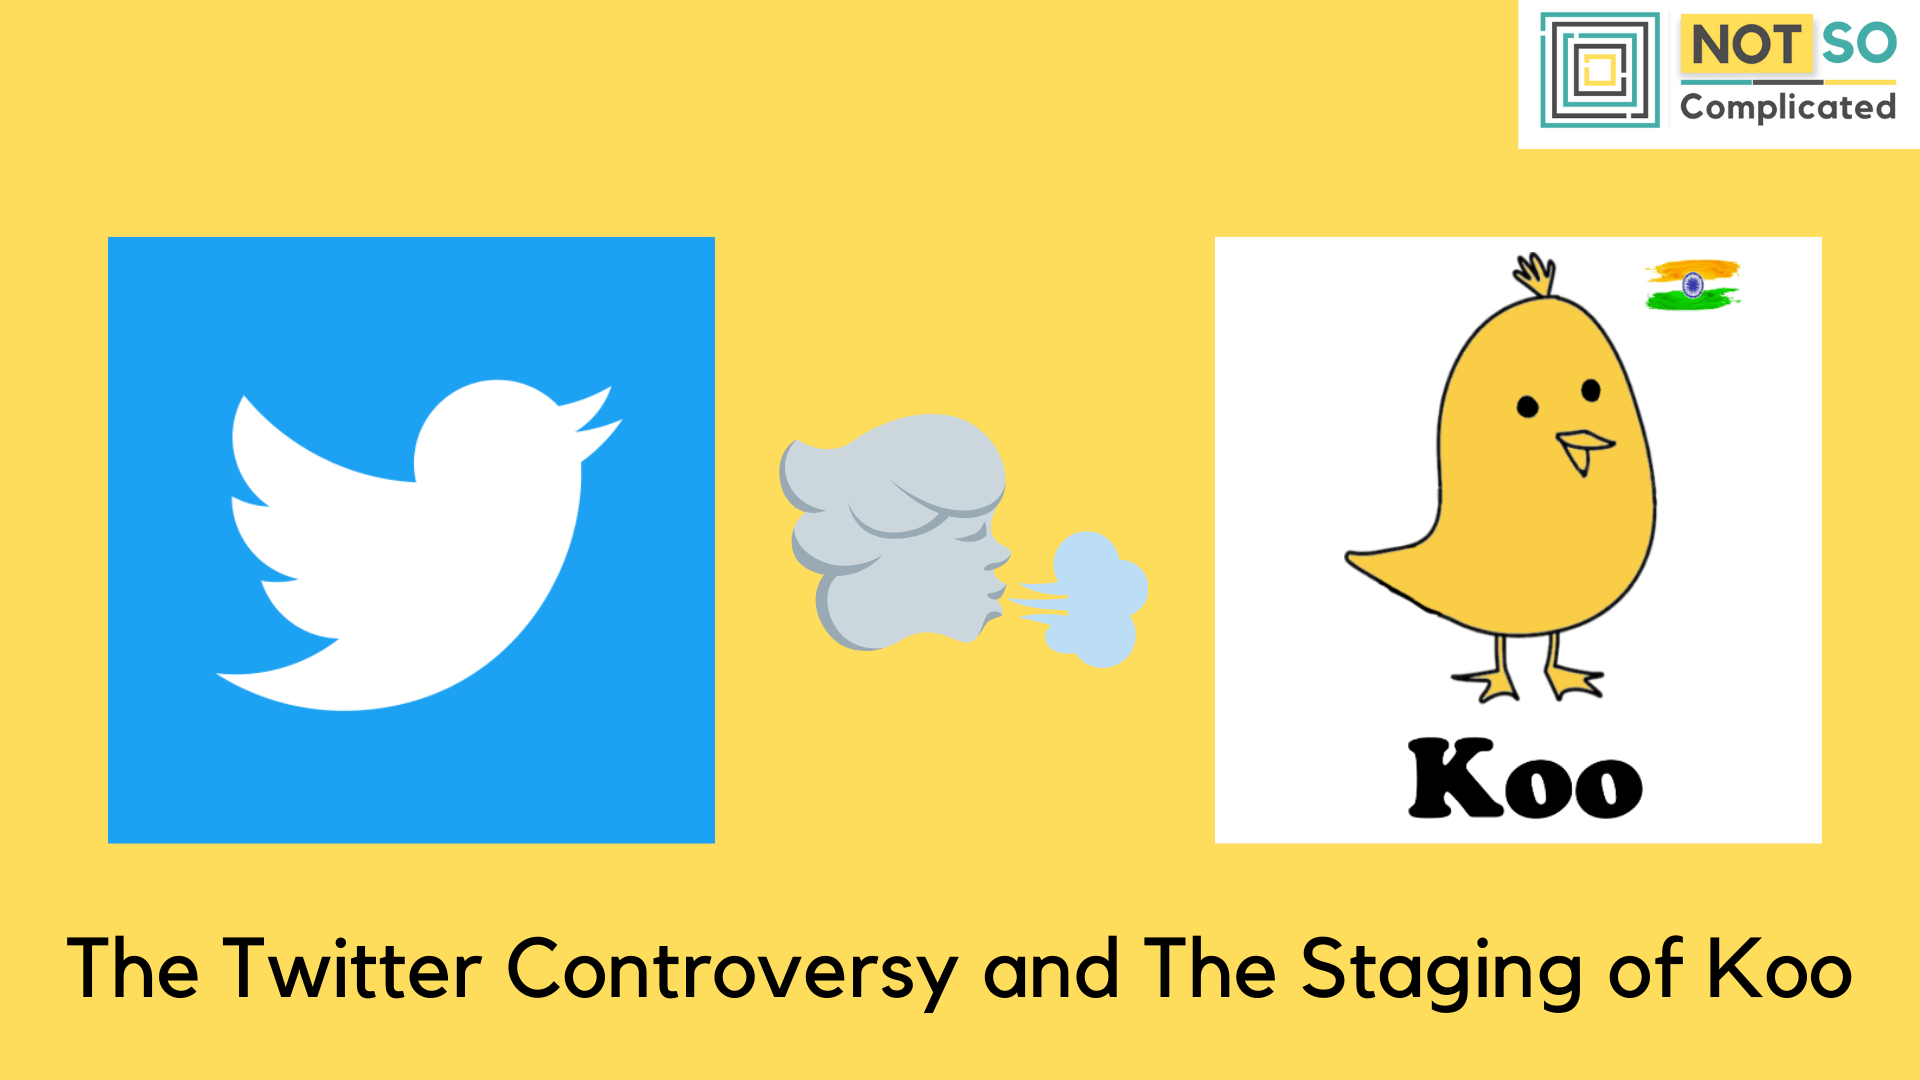 The Twitter Controversy And The Staging of Koo